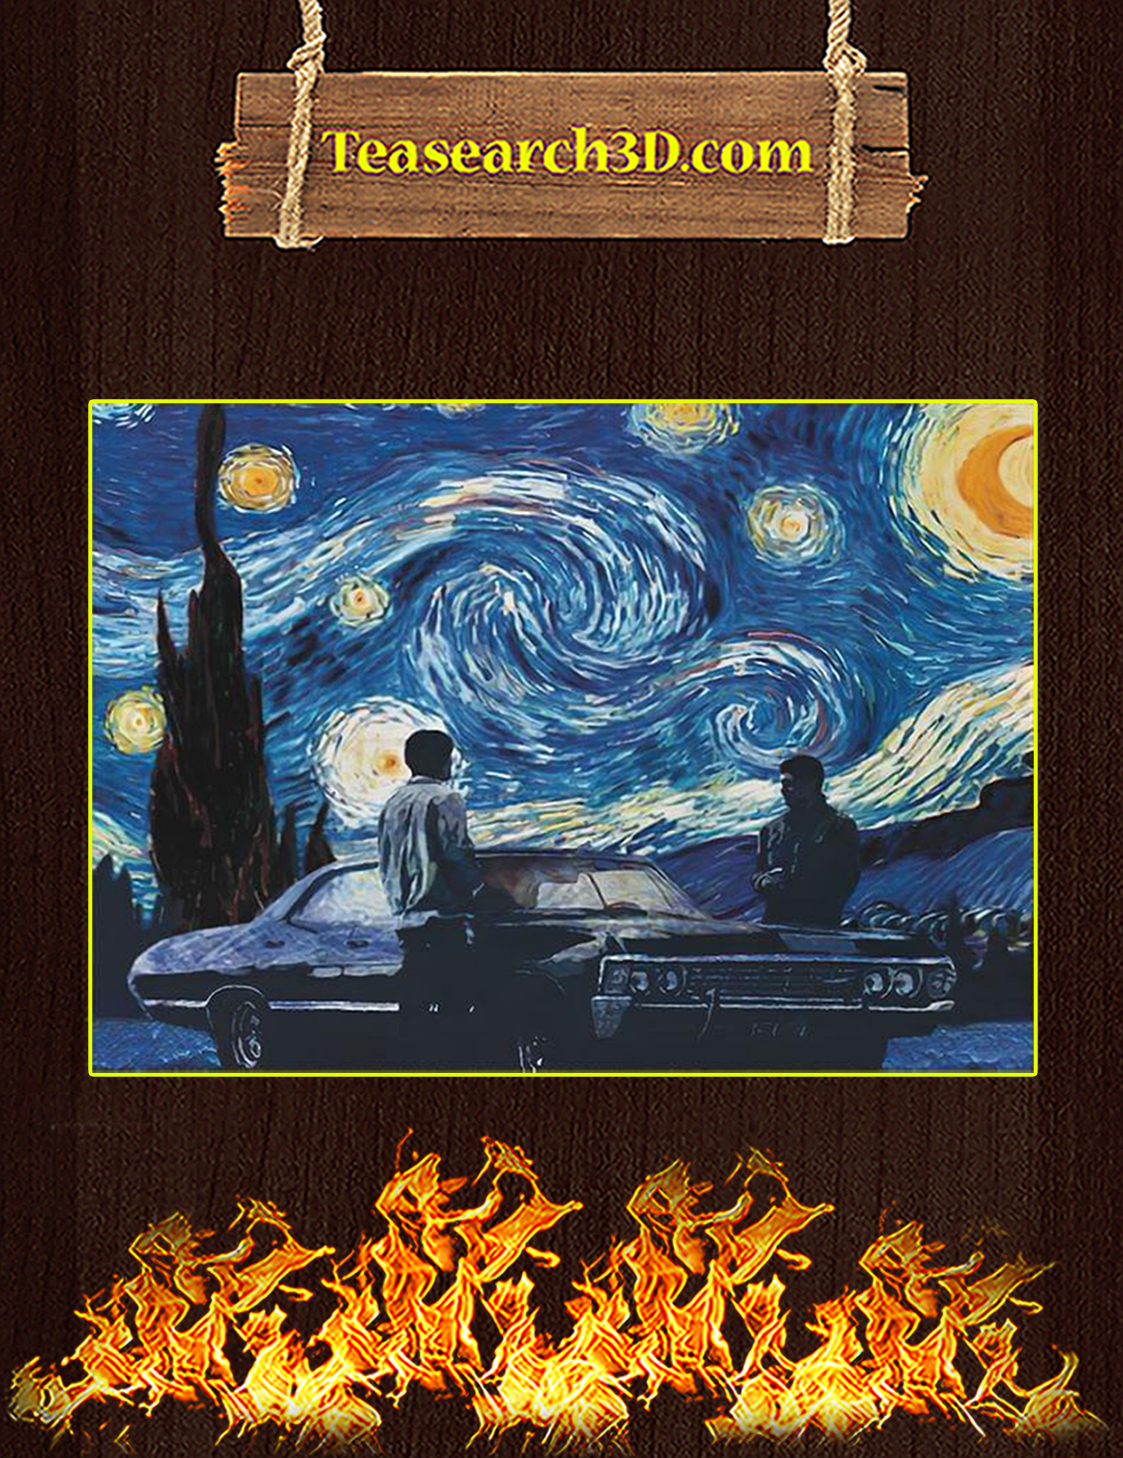 Supernatural starry night van gogh poster A3